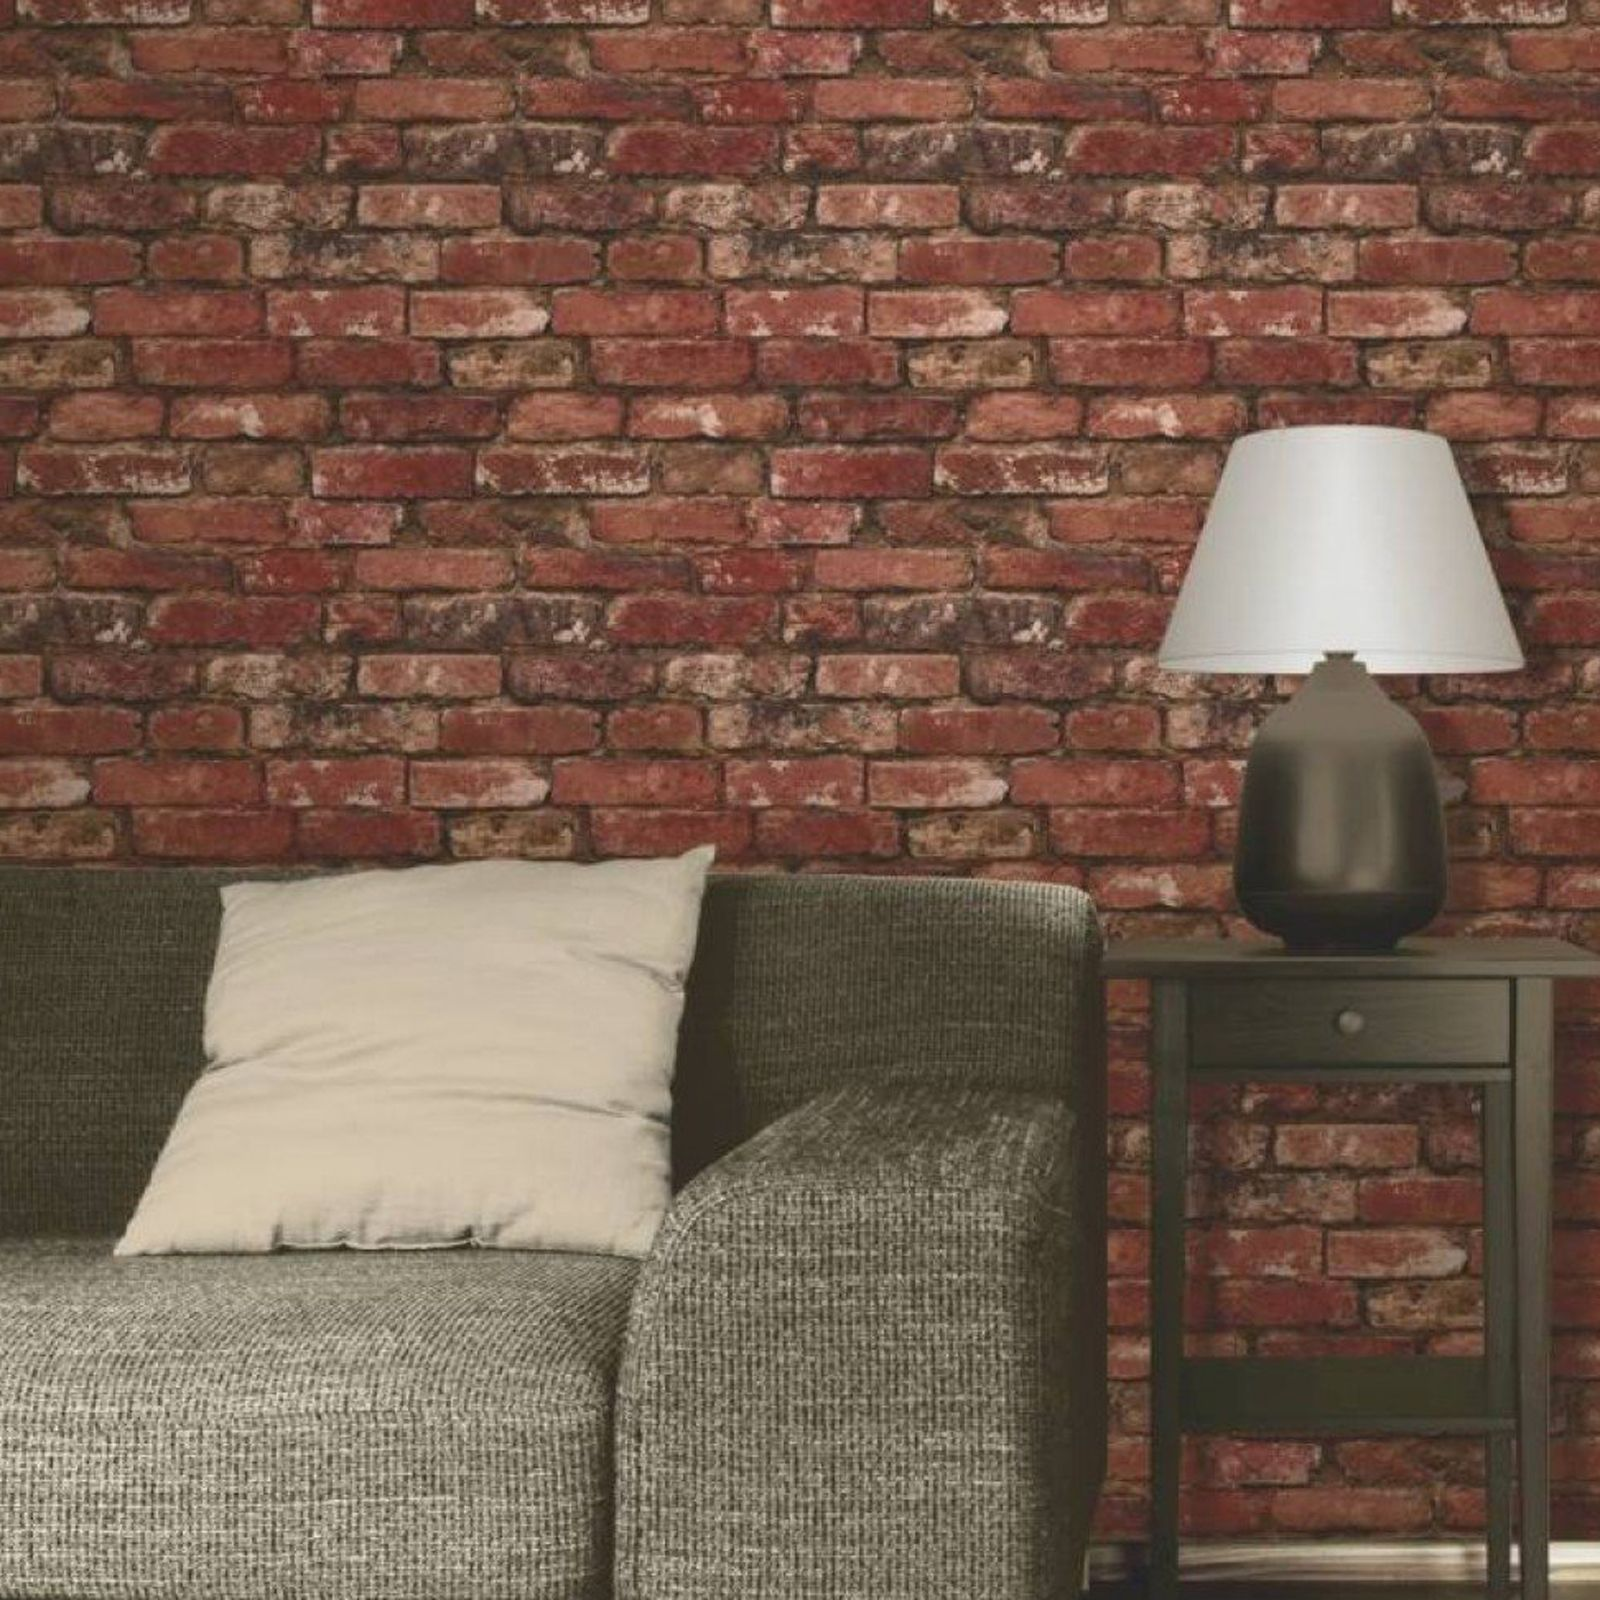 RED BRICK EFFECT REALISTIC WALLPAPER ROOM DECOR FEATURE